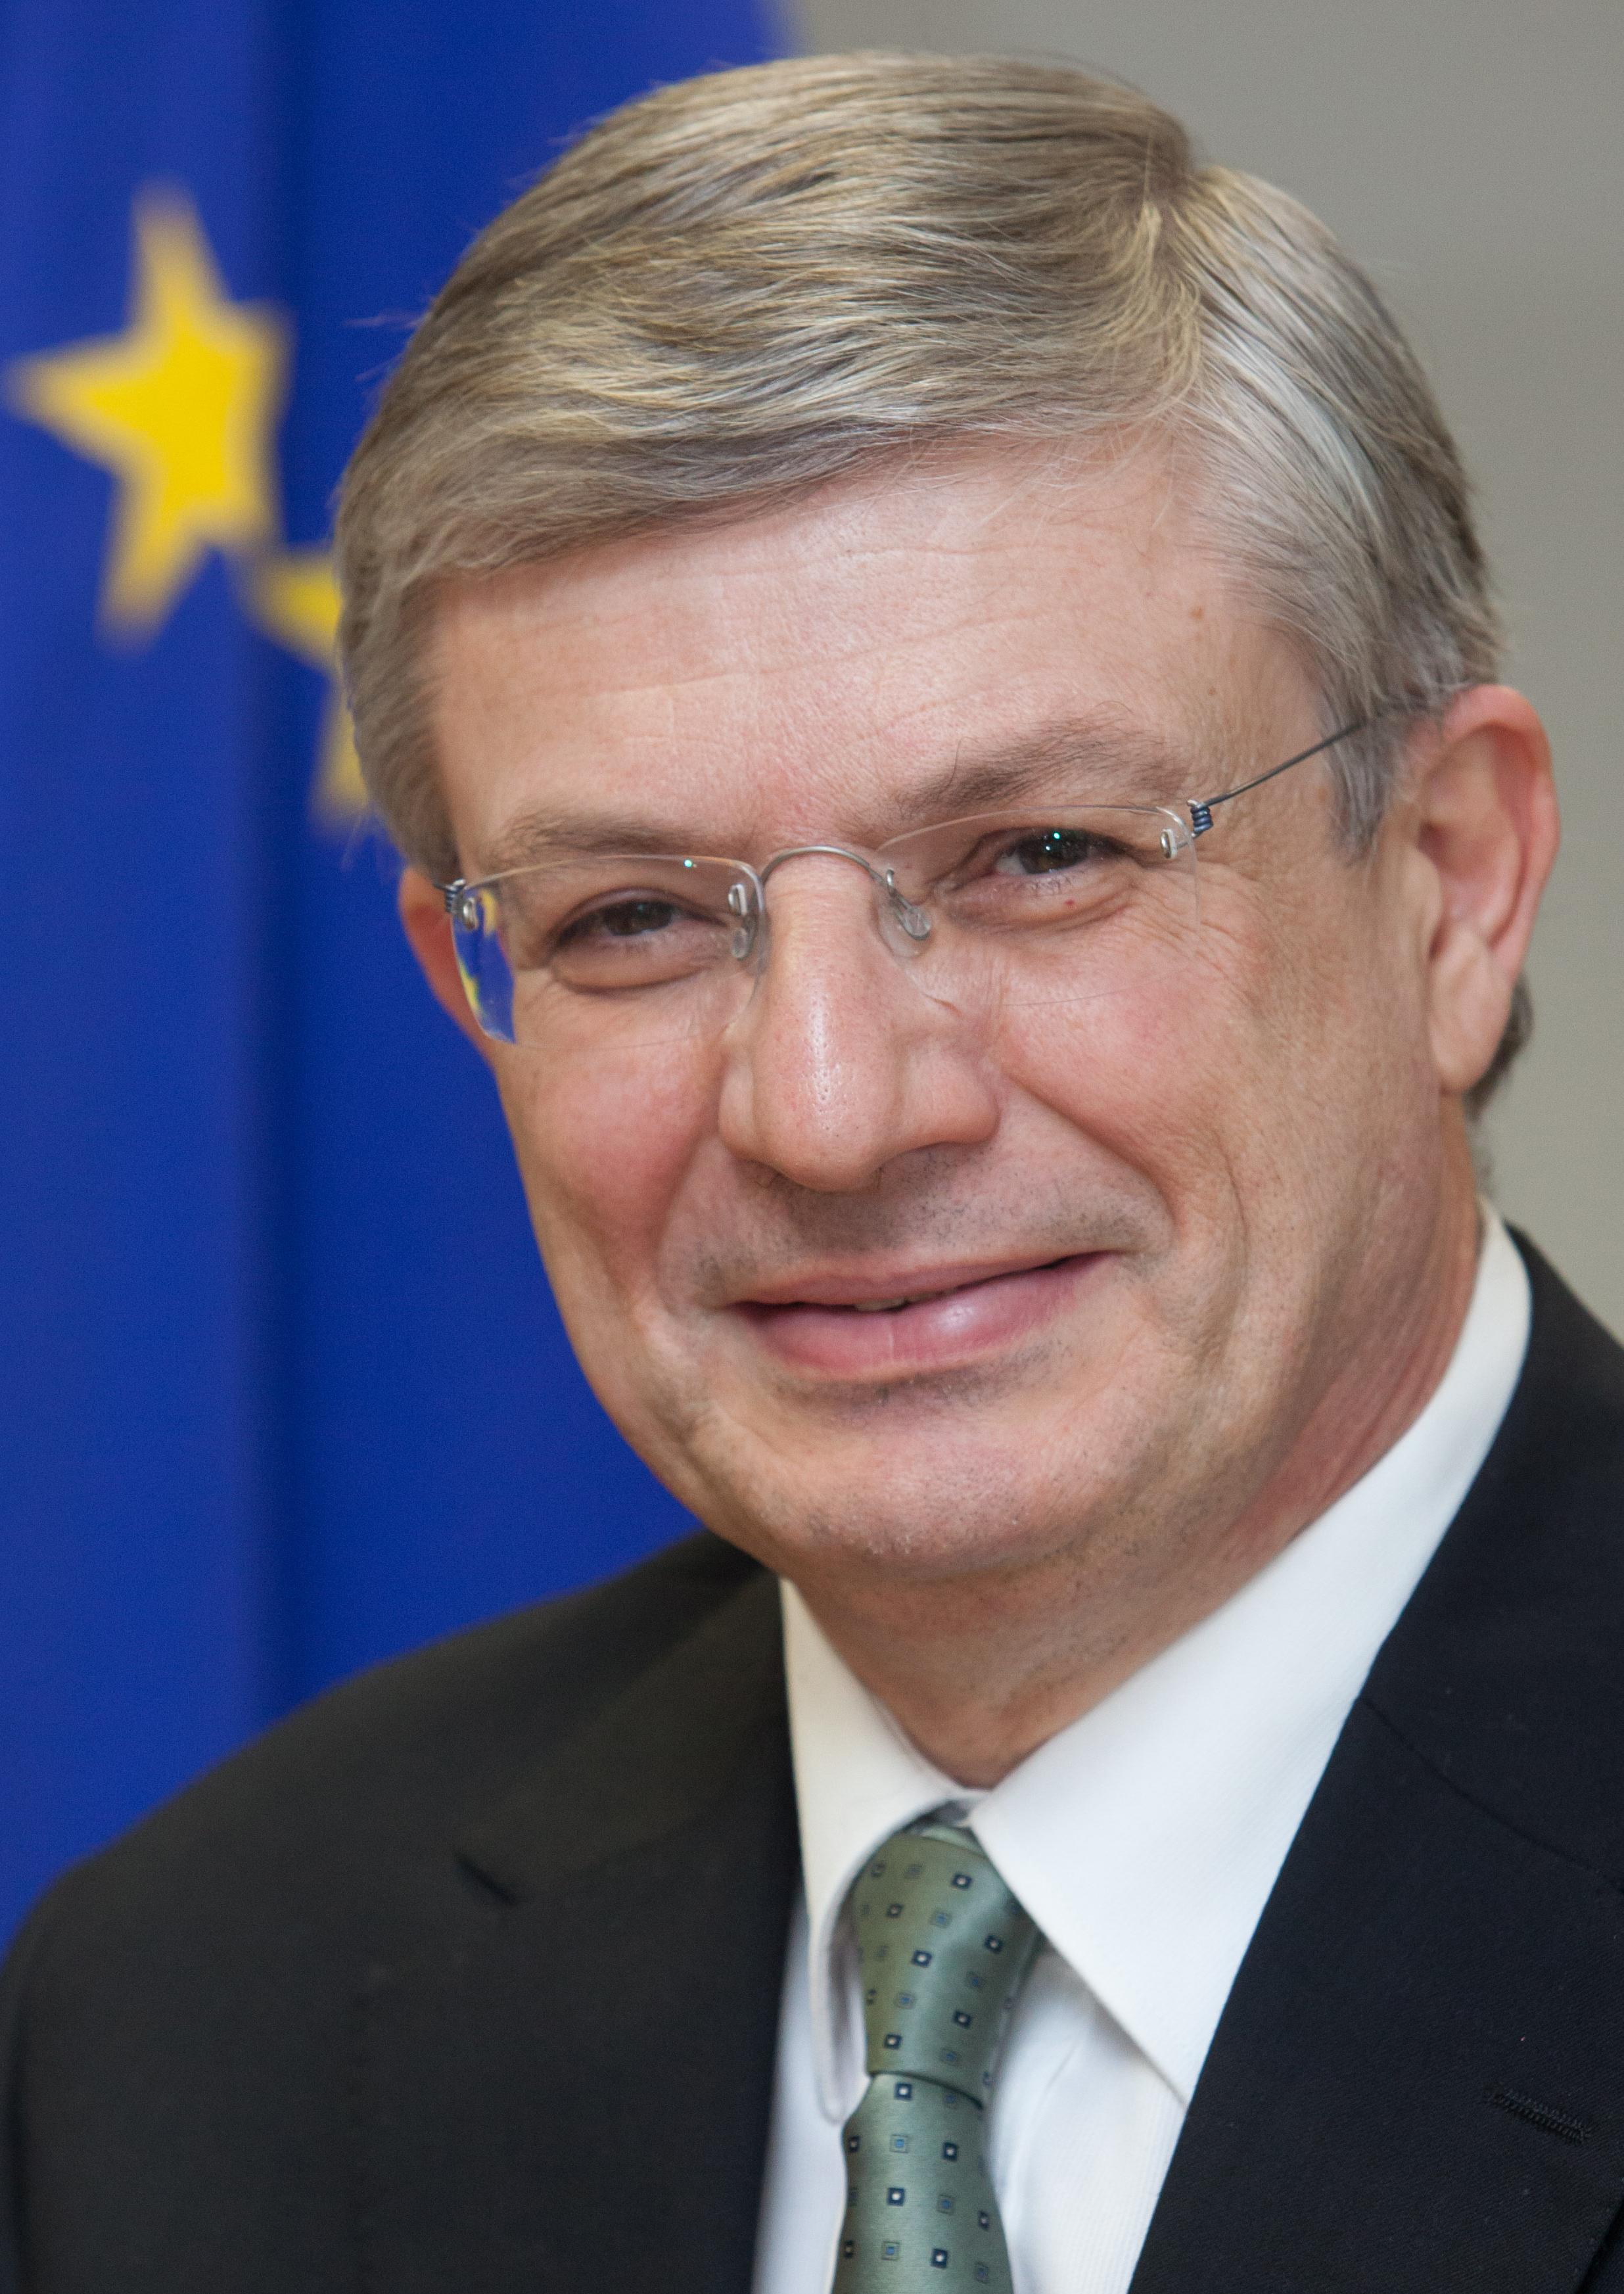 Tonio Borg, European Commissioner for Health